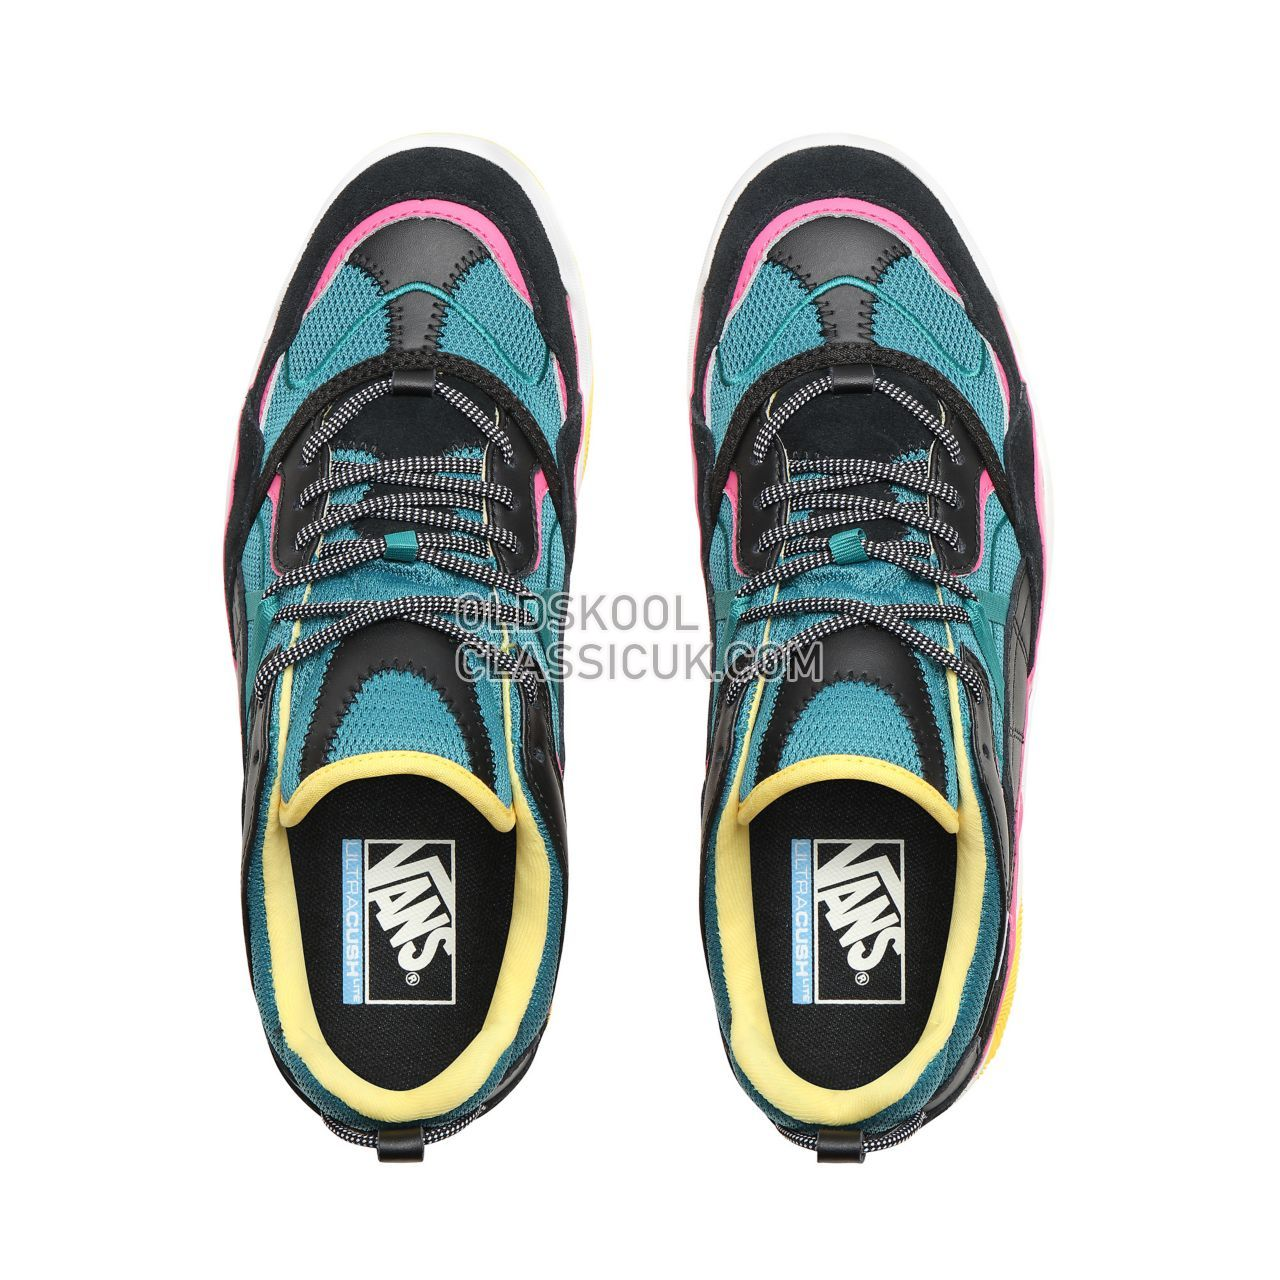 ec1a4e9aee8dd4 Vans Varix WC Sneakers Mens Black Quetzal Green Carmine Rose VN0A3WLNT47  Shoes - £91